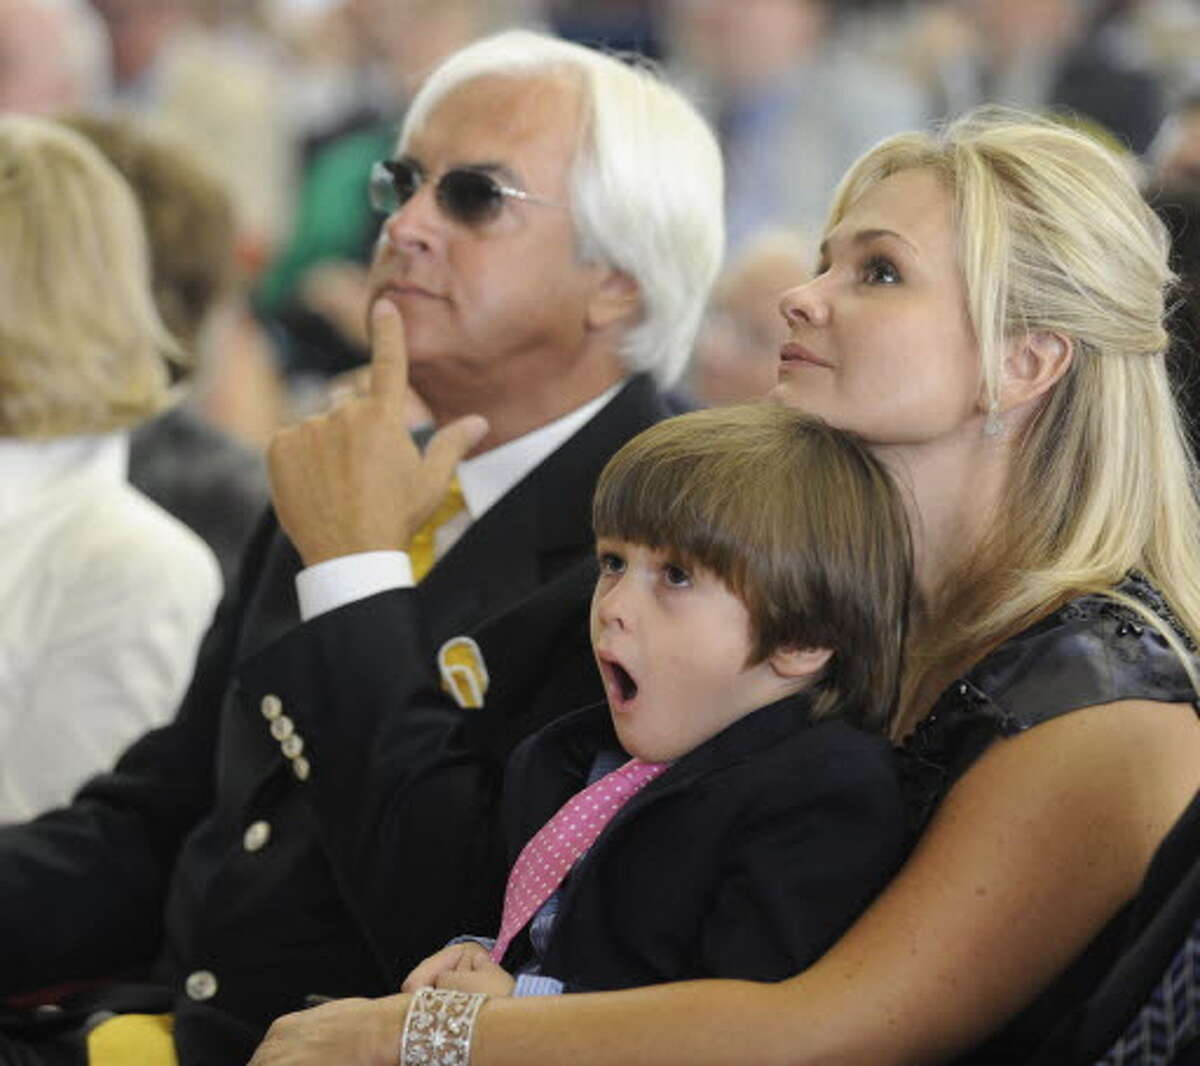 Trainer Bob Baffert(l) listens intently to the speeches of inductees while his son Bode yawns on his mother Jill's lap before his dad's turn to be inducted in to the Thoroughbred Racing Hall of Fame at the ceremony held at the Fasig Tipton sales pavilion in Saratoga Springs, New York August 14, 2009. (Skip Dickstein / Times Union)